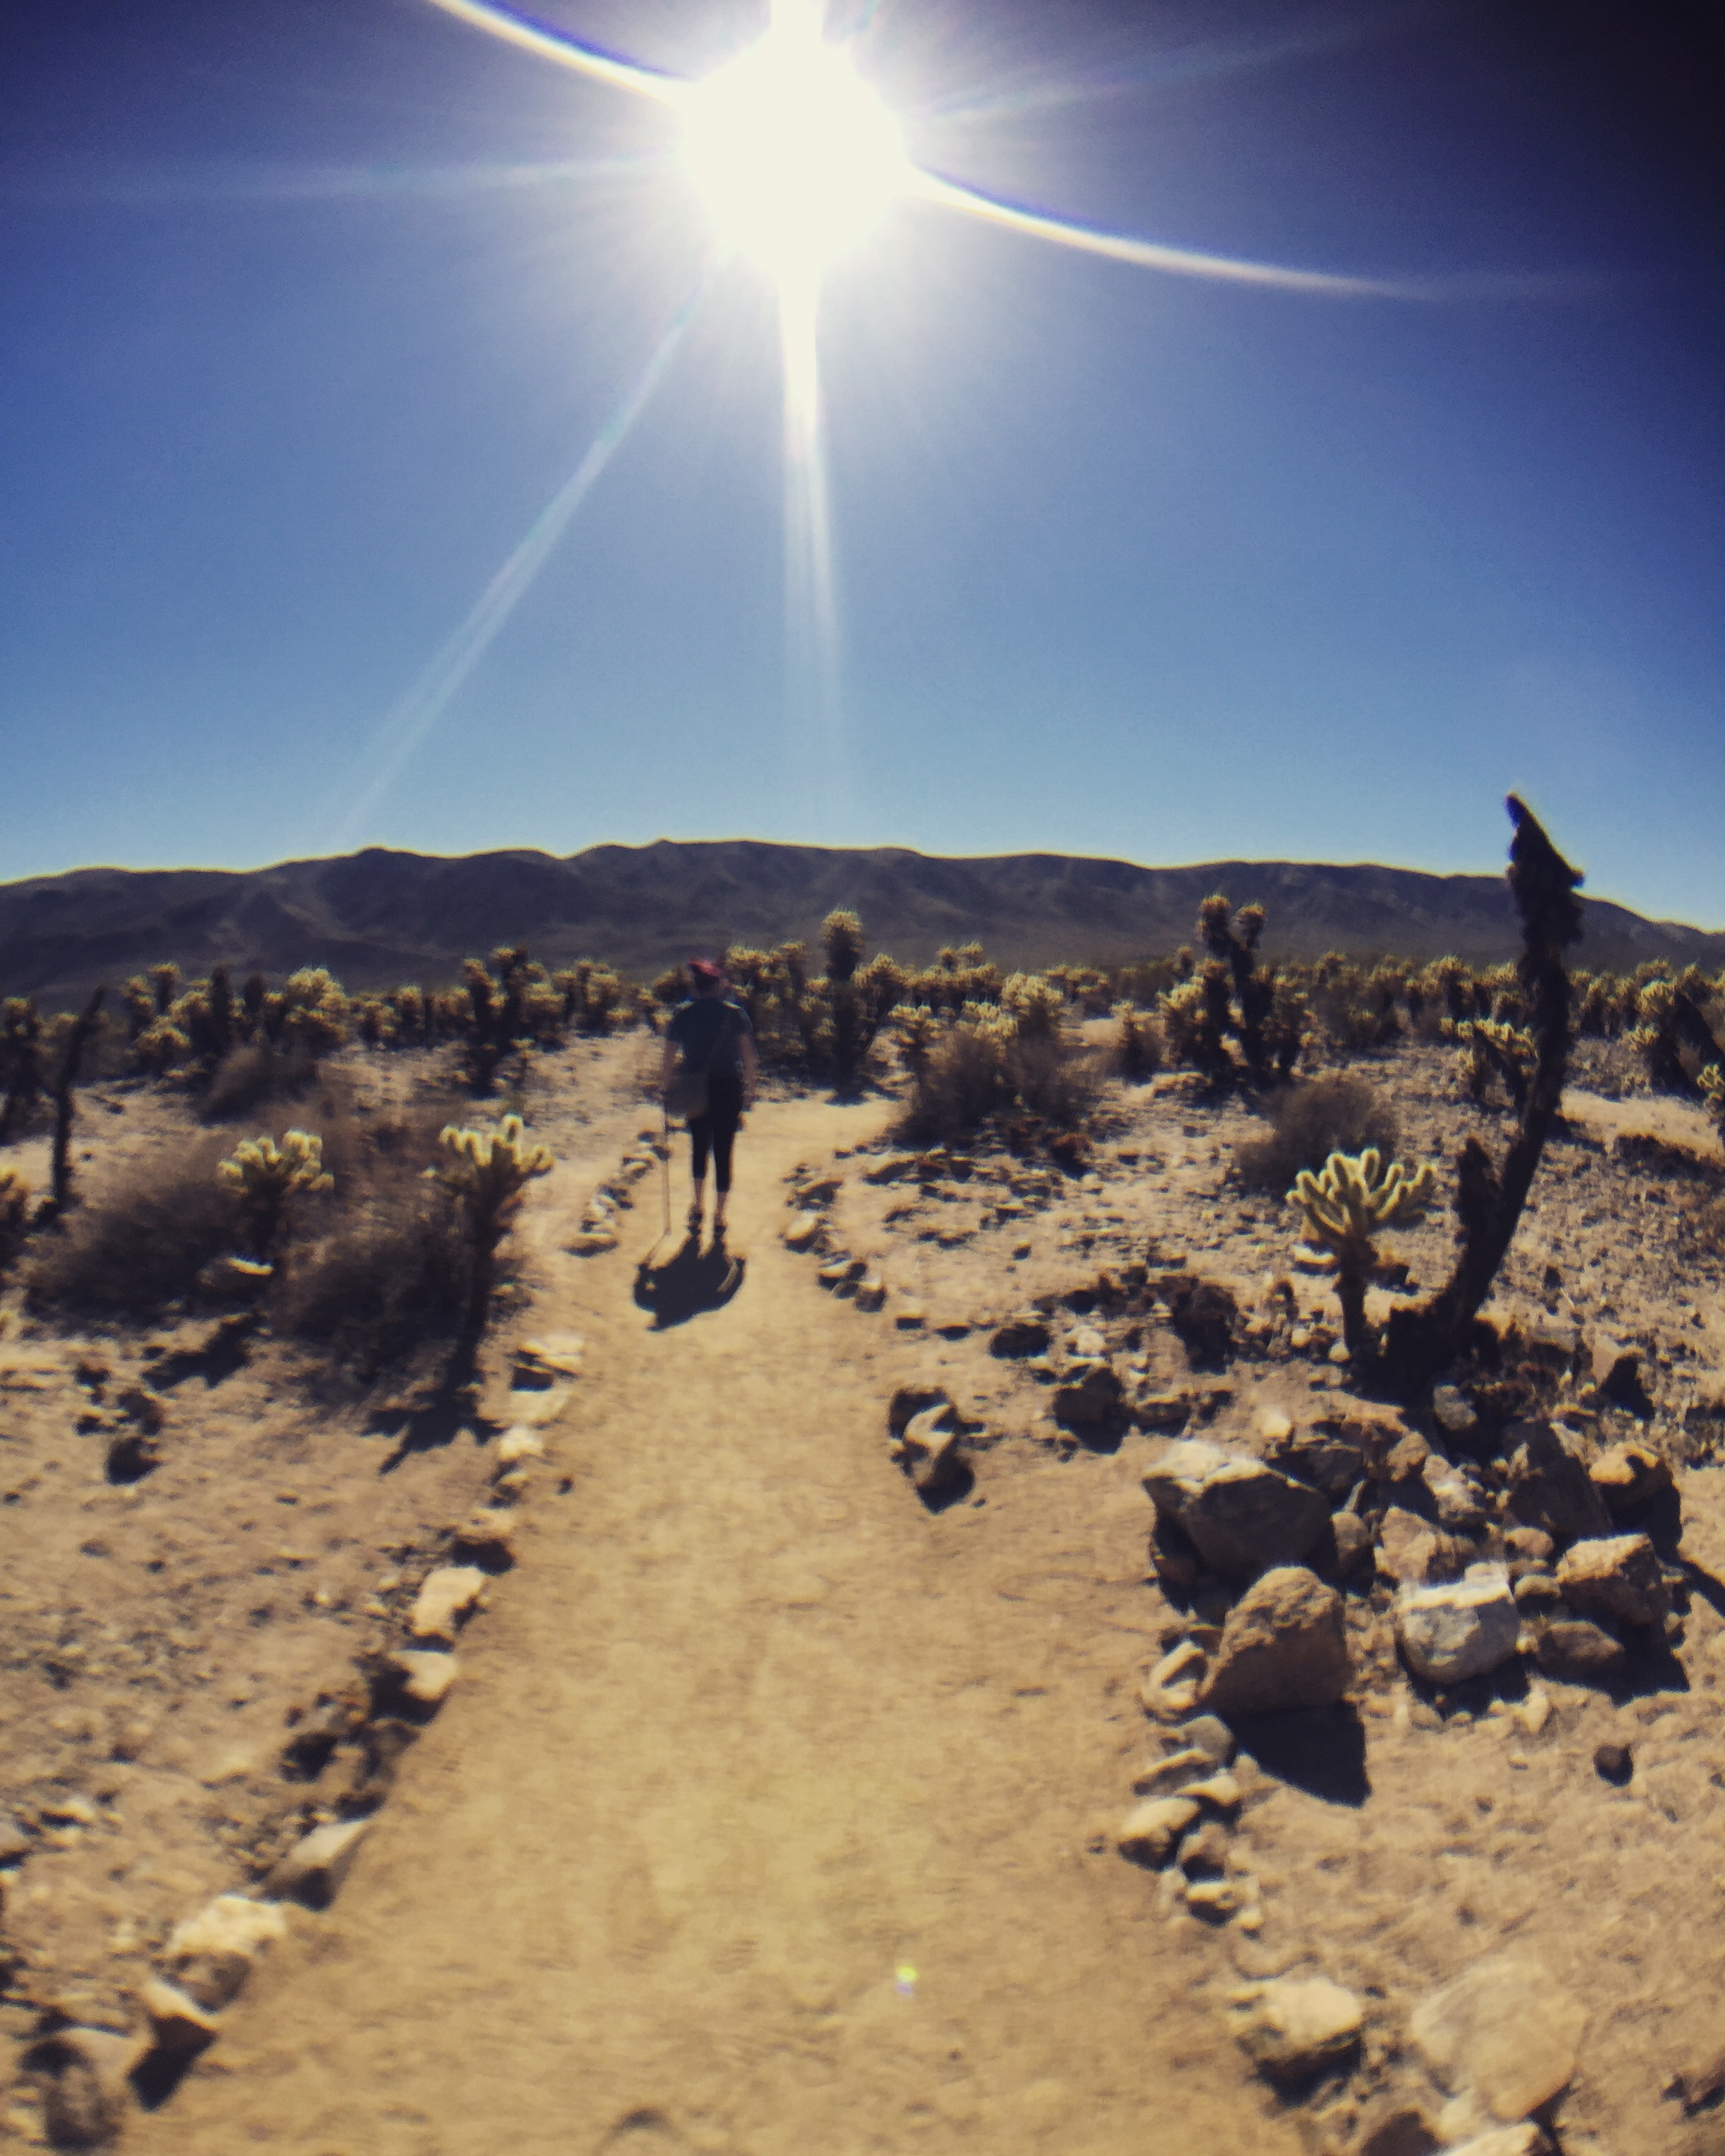 Heather walking with her cane in Joshua Tree National Park, 2016.